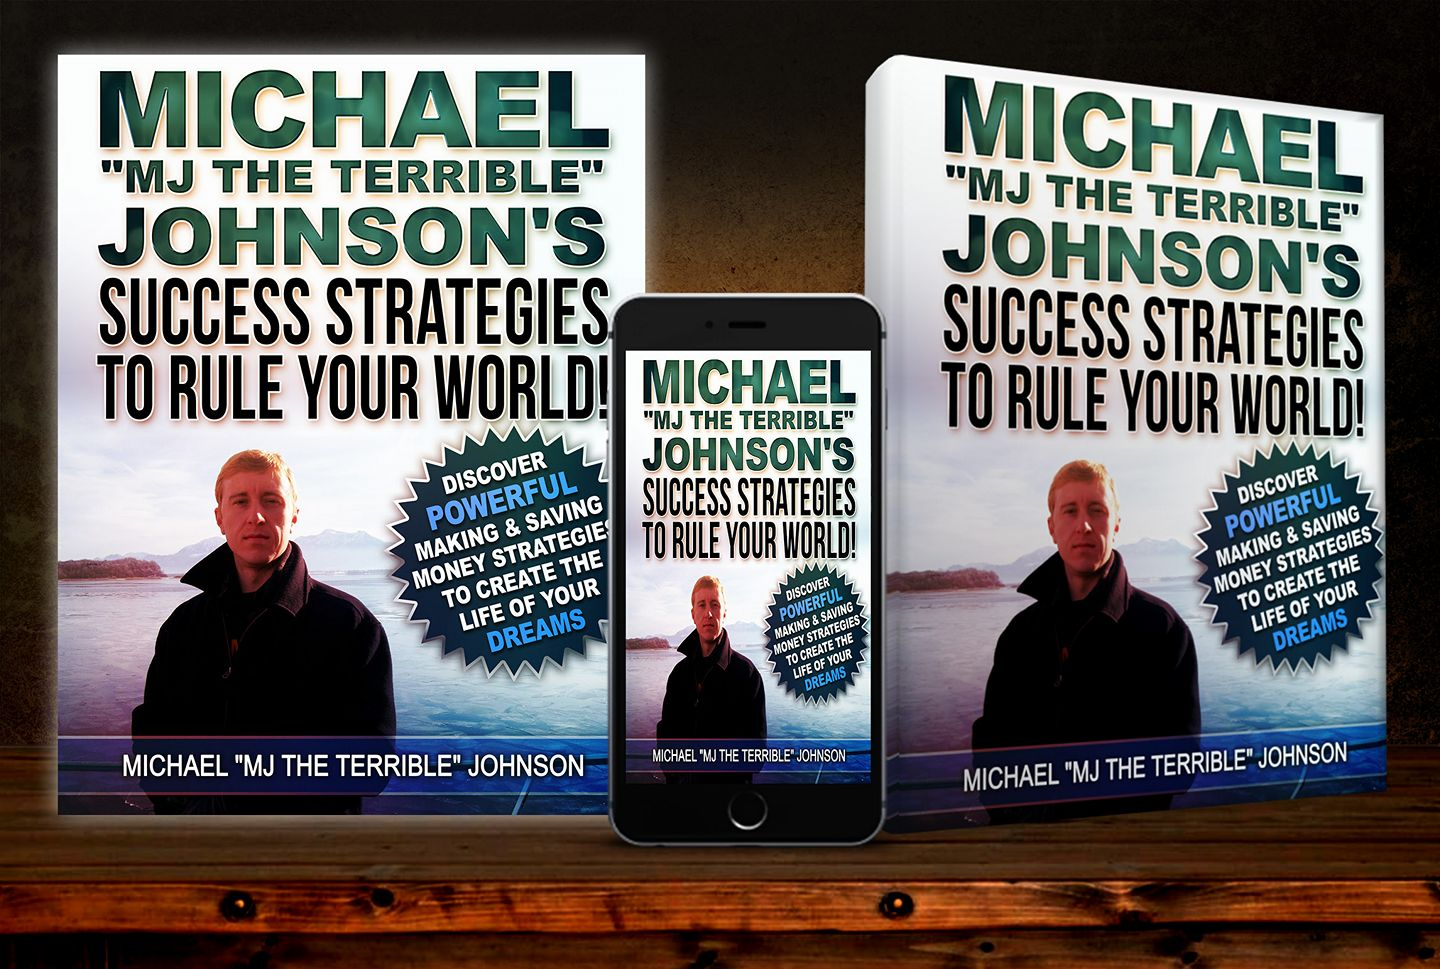 """Michael """"MJ The Terrible"""" Johnson's Success Strategies To Rule Your World! (Book Spread)"""